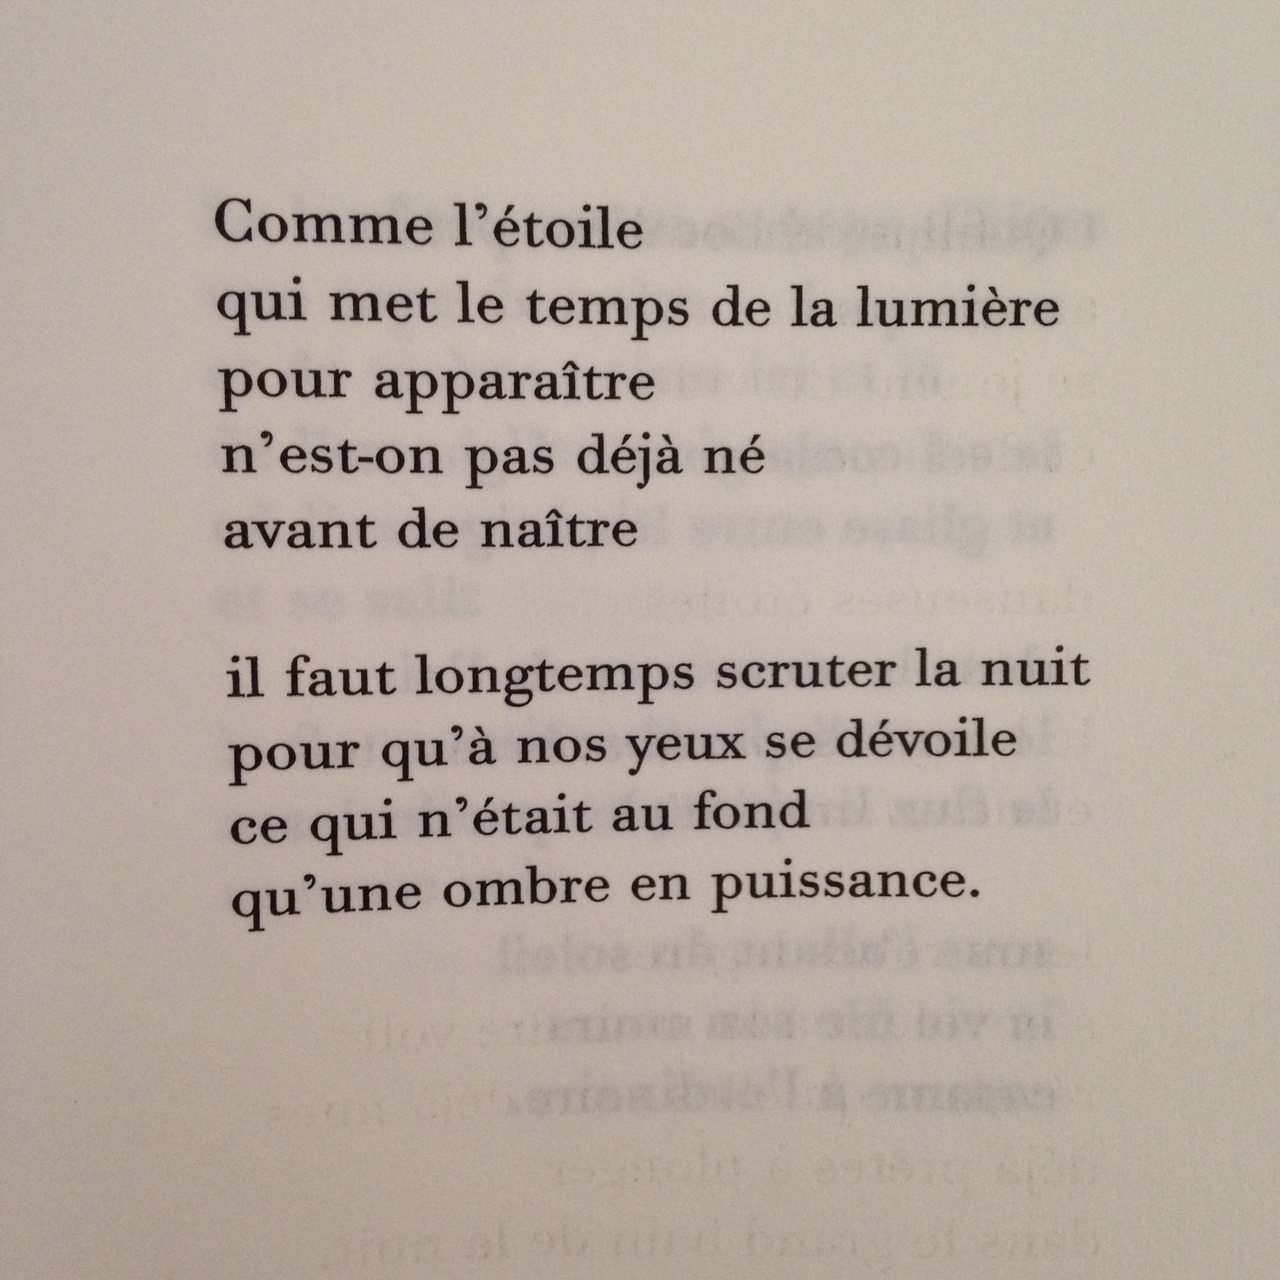 Image About Citation In L Ivresse Des Mots By Brocoli Perime